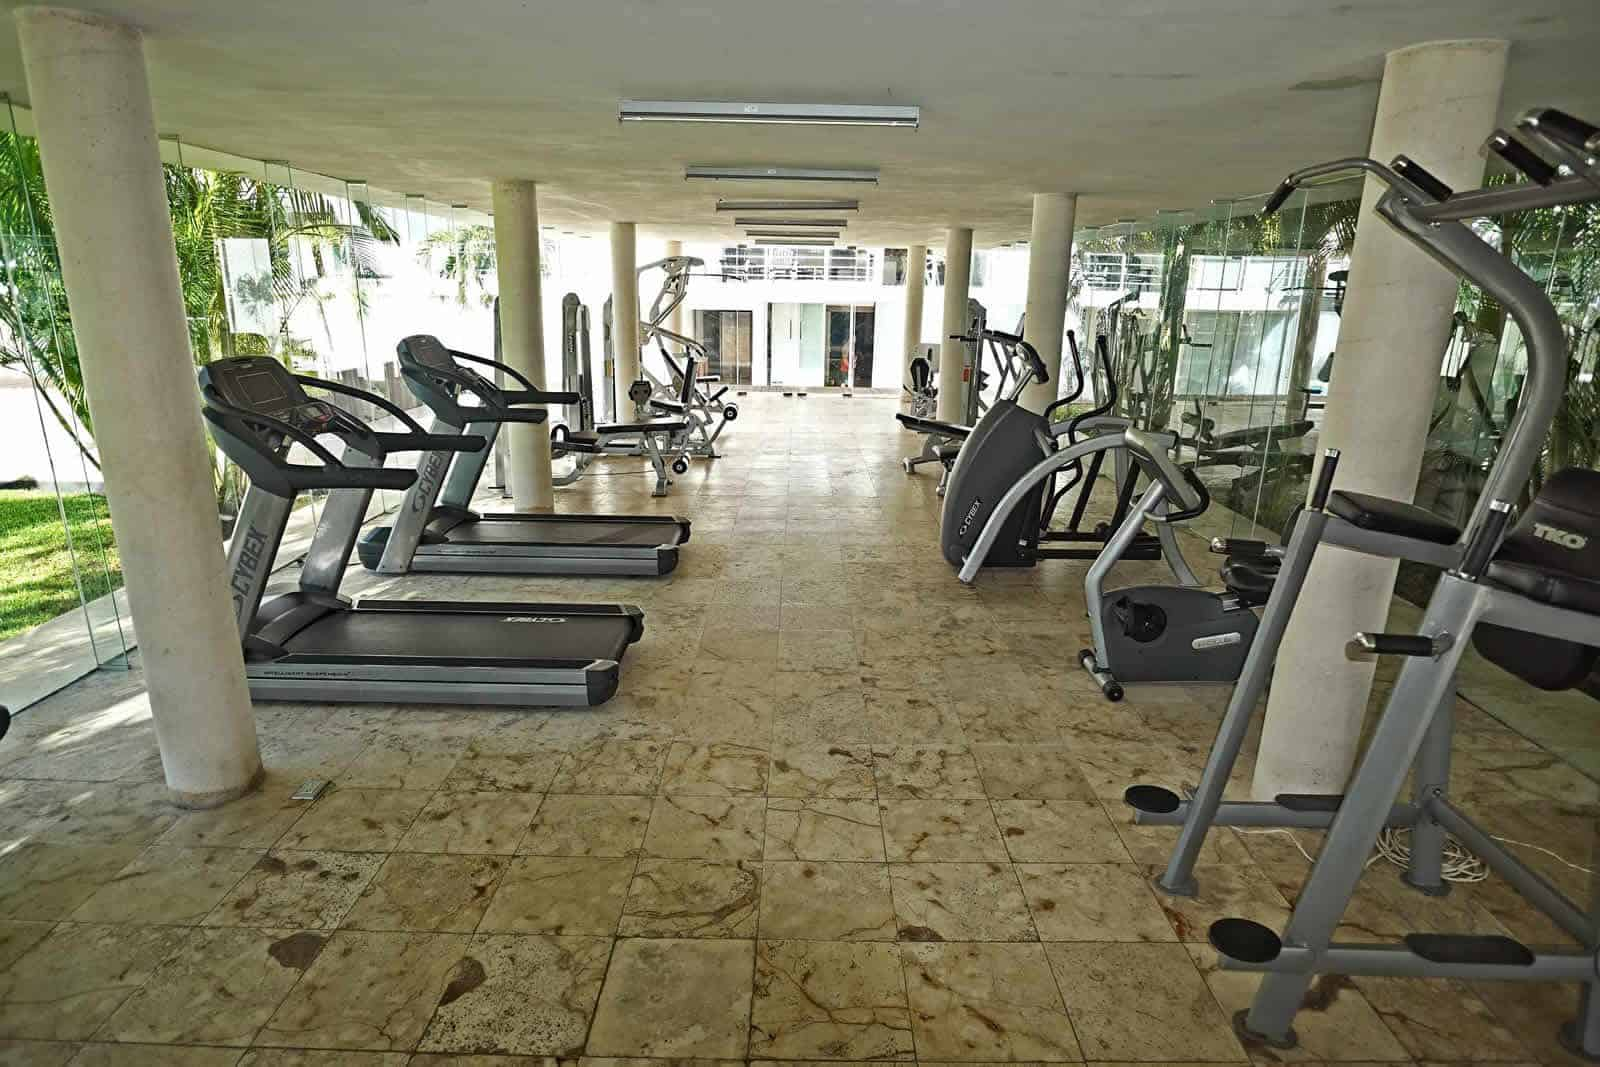 Magia PH1F gym is spacious and air conditioned